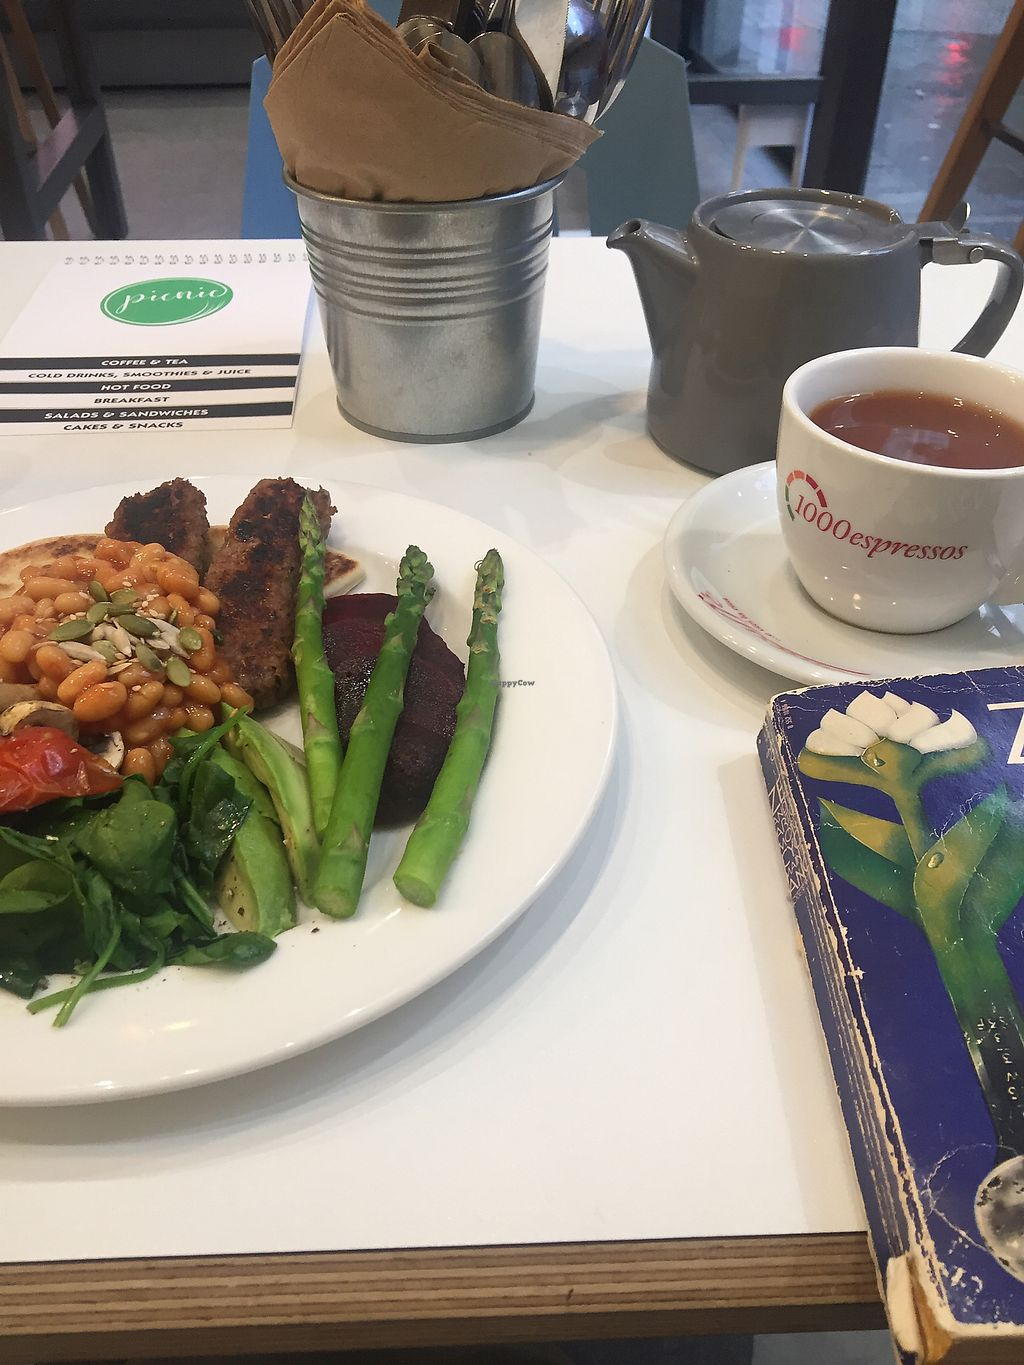 "Photo of Picnic  by <a href=""/members/profile/KellyOldham"">KellyOldham</a> <br/>Full breakfast and Irish tea with oat milk <br/> February 17, 2018  - <a href='/contact/abuse/image/83322/360271'>Report</a>"